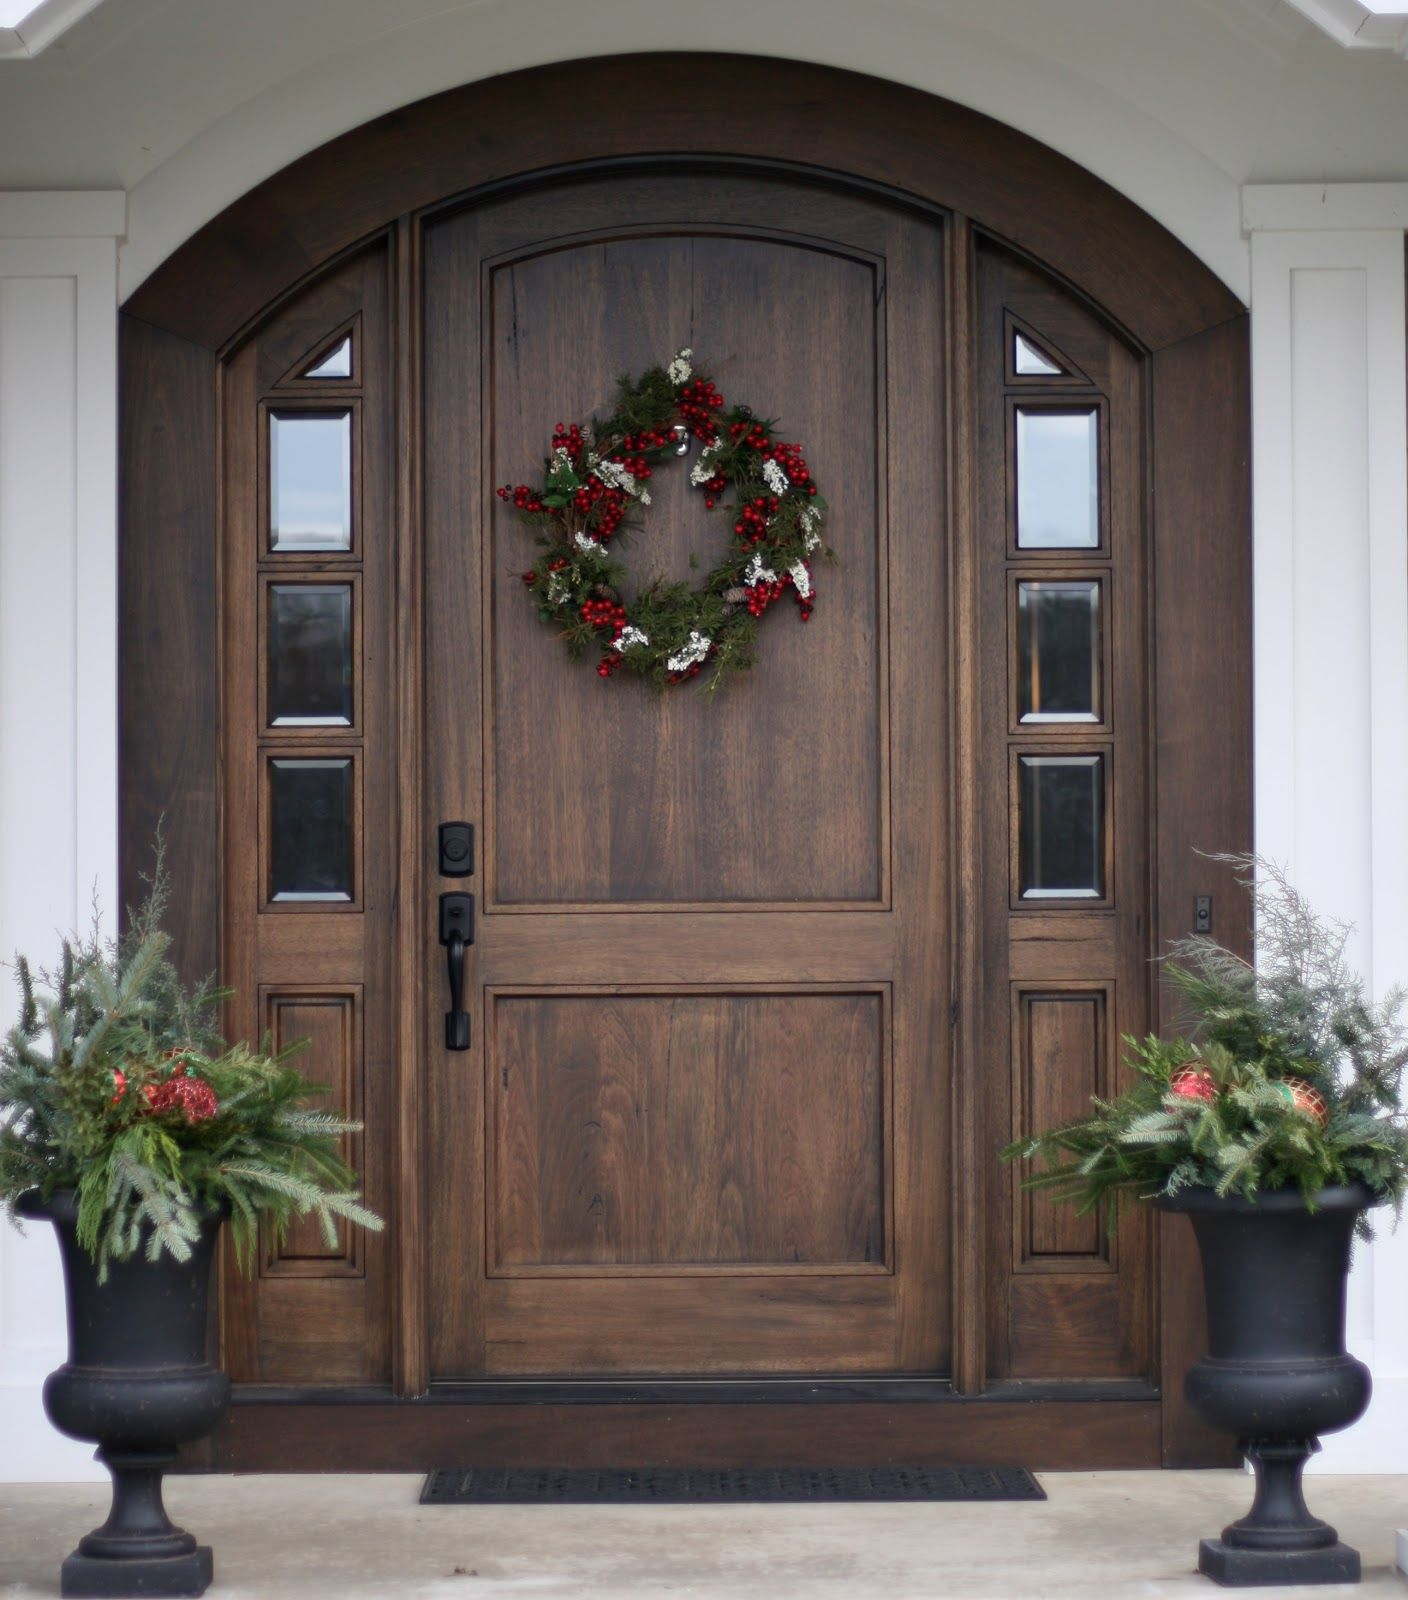 Exceptionnel Gallery Of House Front Door Design Ideas Consist Of Modern, Vintage And  More Concept Or Styles Pictures. Read This Front Door Ideas To See It Match  You Or